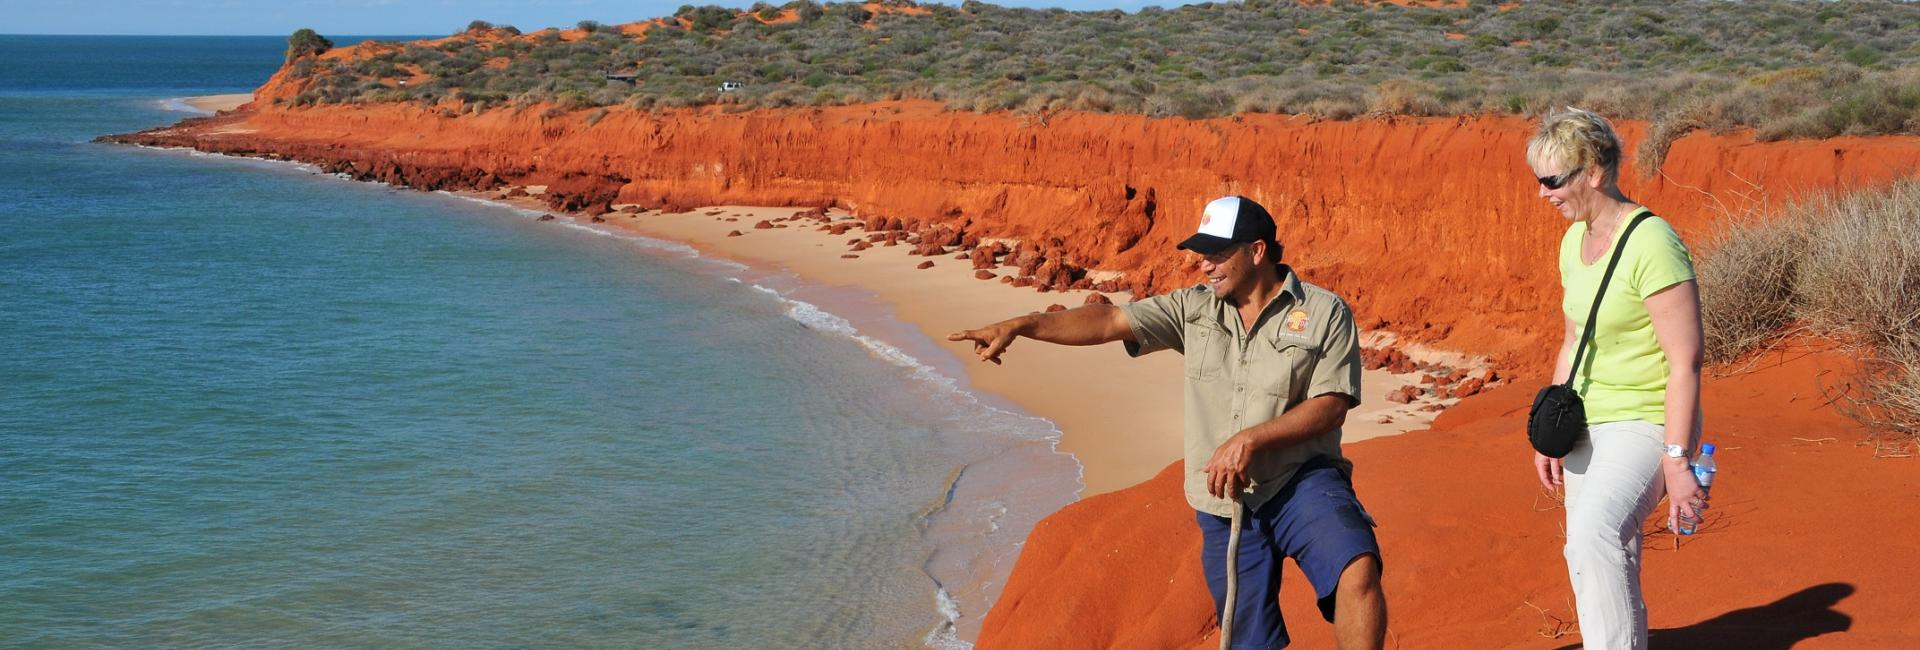 A guest on an indigenous tour in Francois Peron National Park with Darren Capewell of Wula Gura Nyinda Eco Cultural Adventures, Shark Bay World Heritage Area, Western Australia